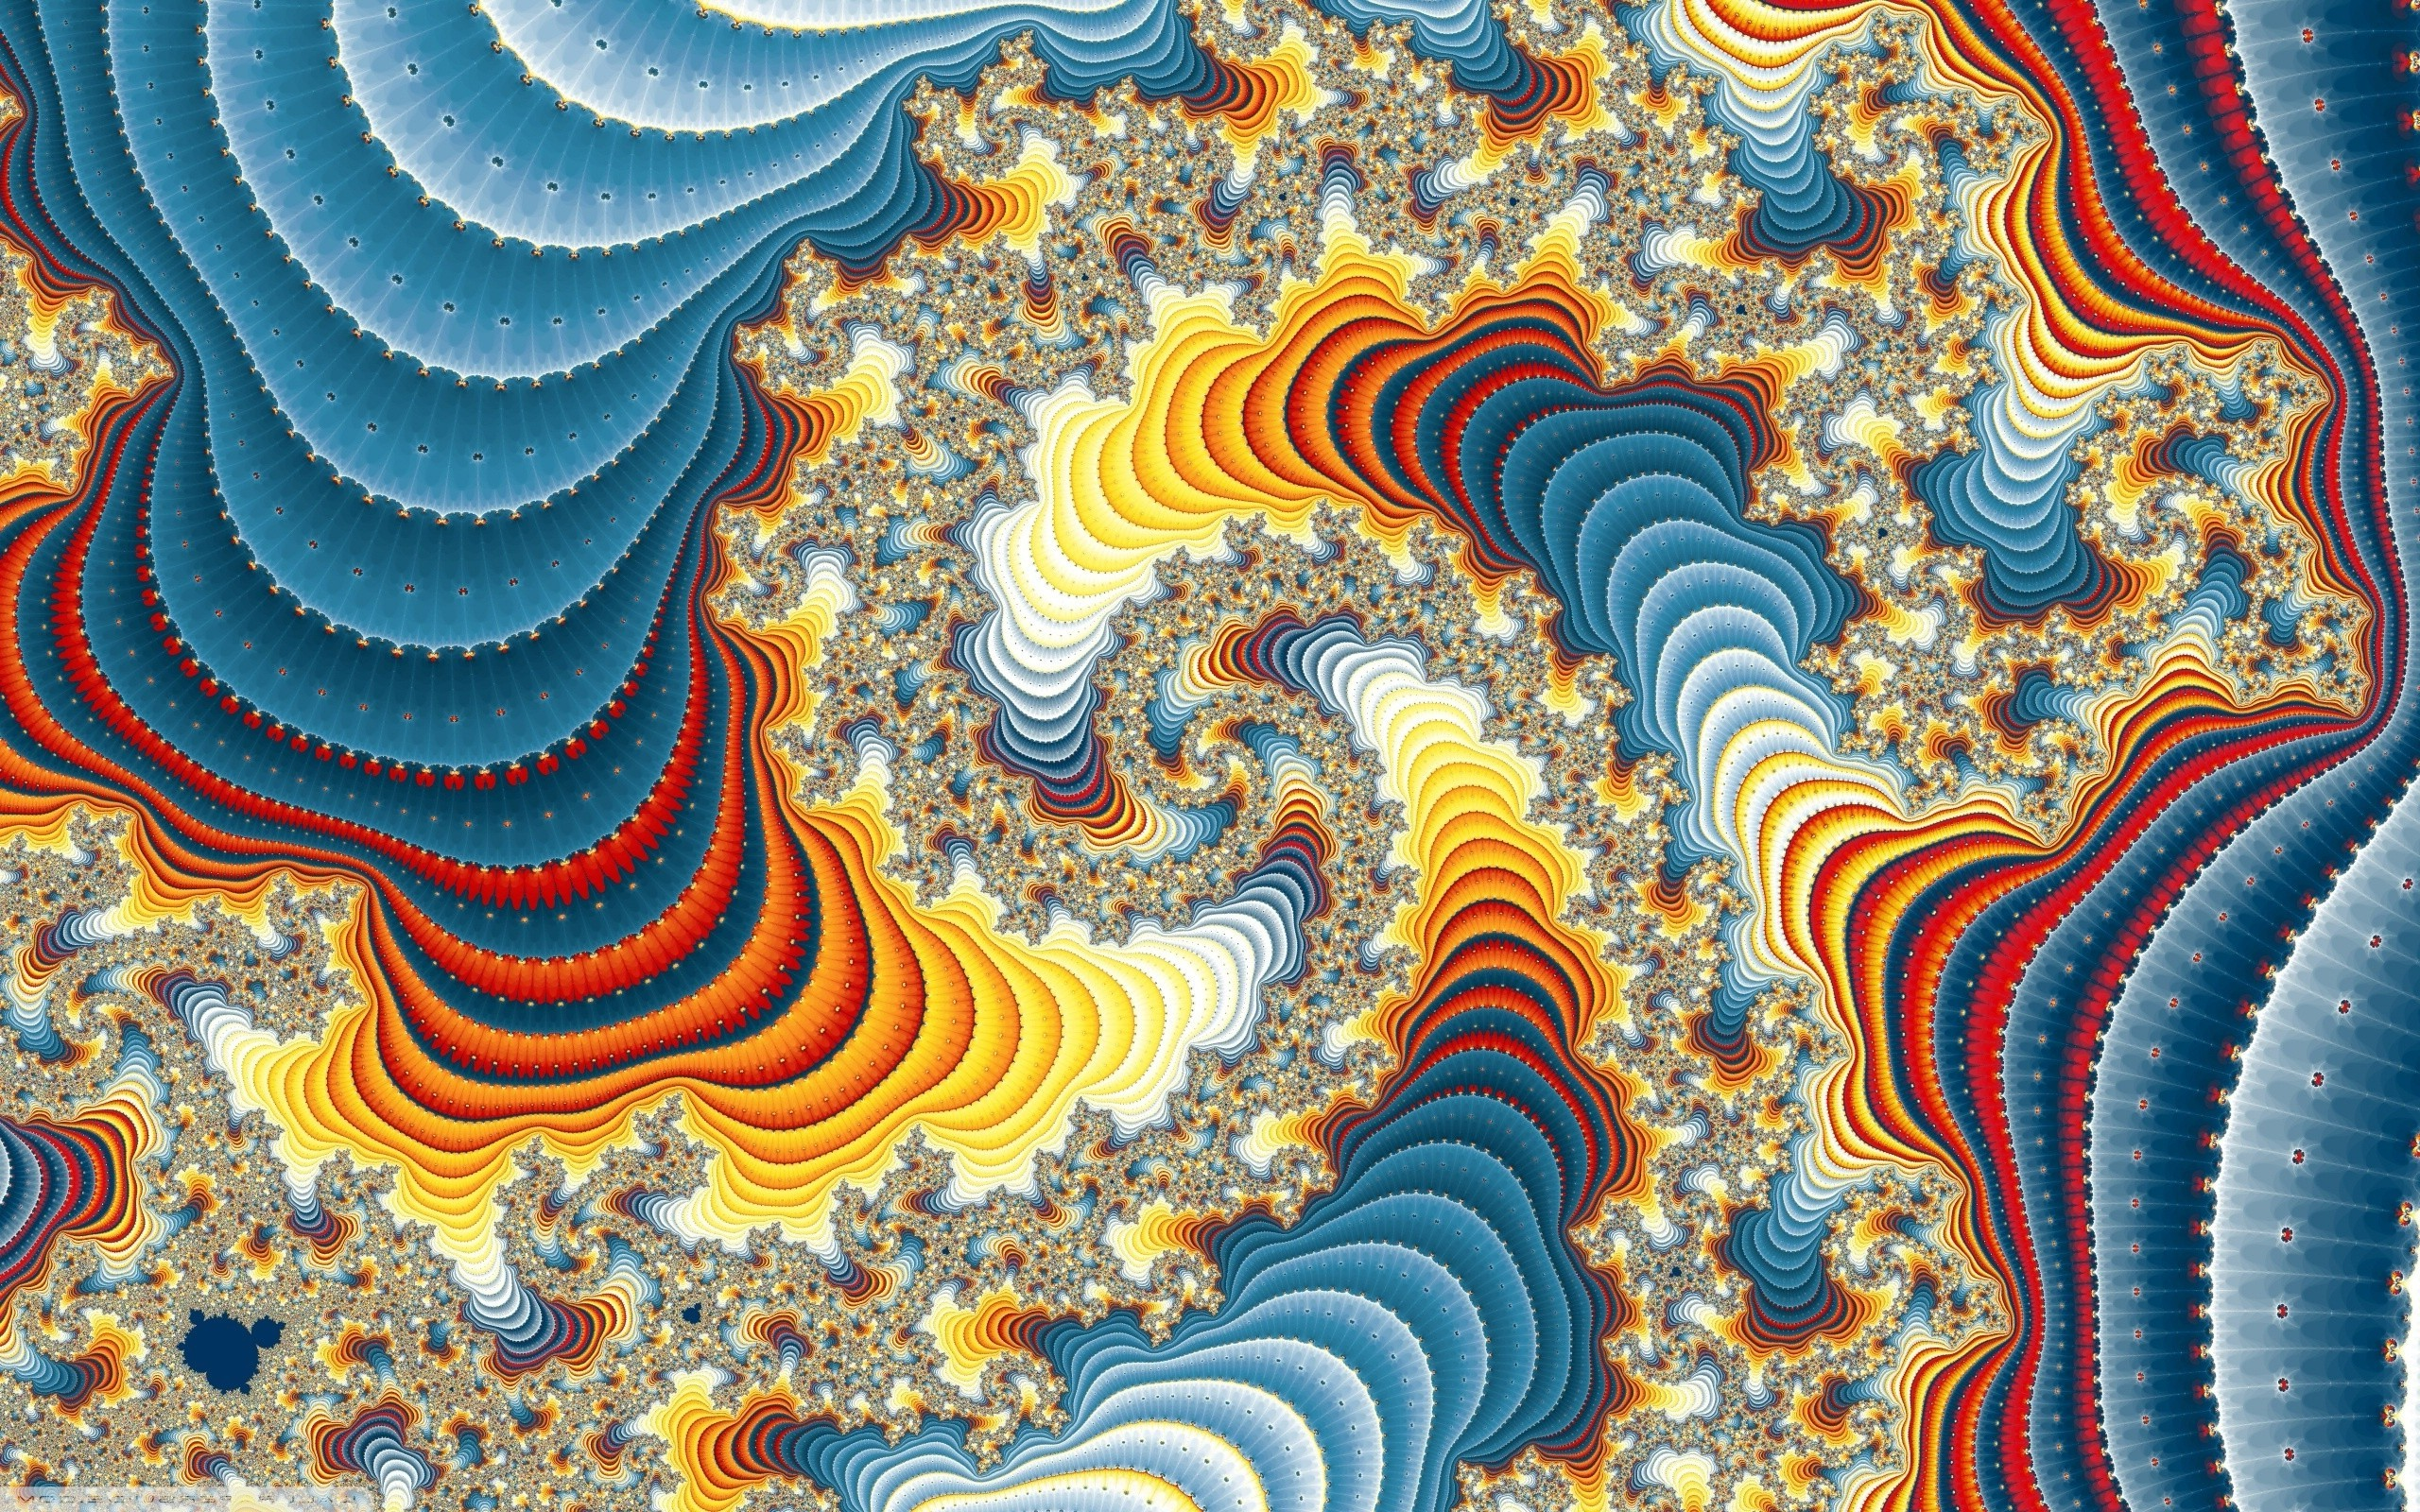 Psychedelic Art Wallpapers (79+ images)